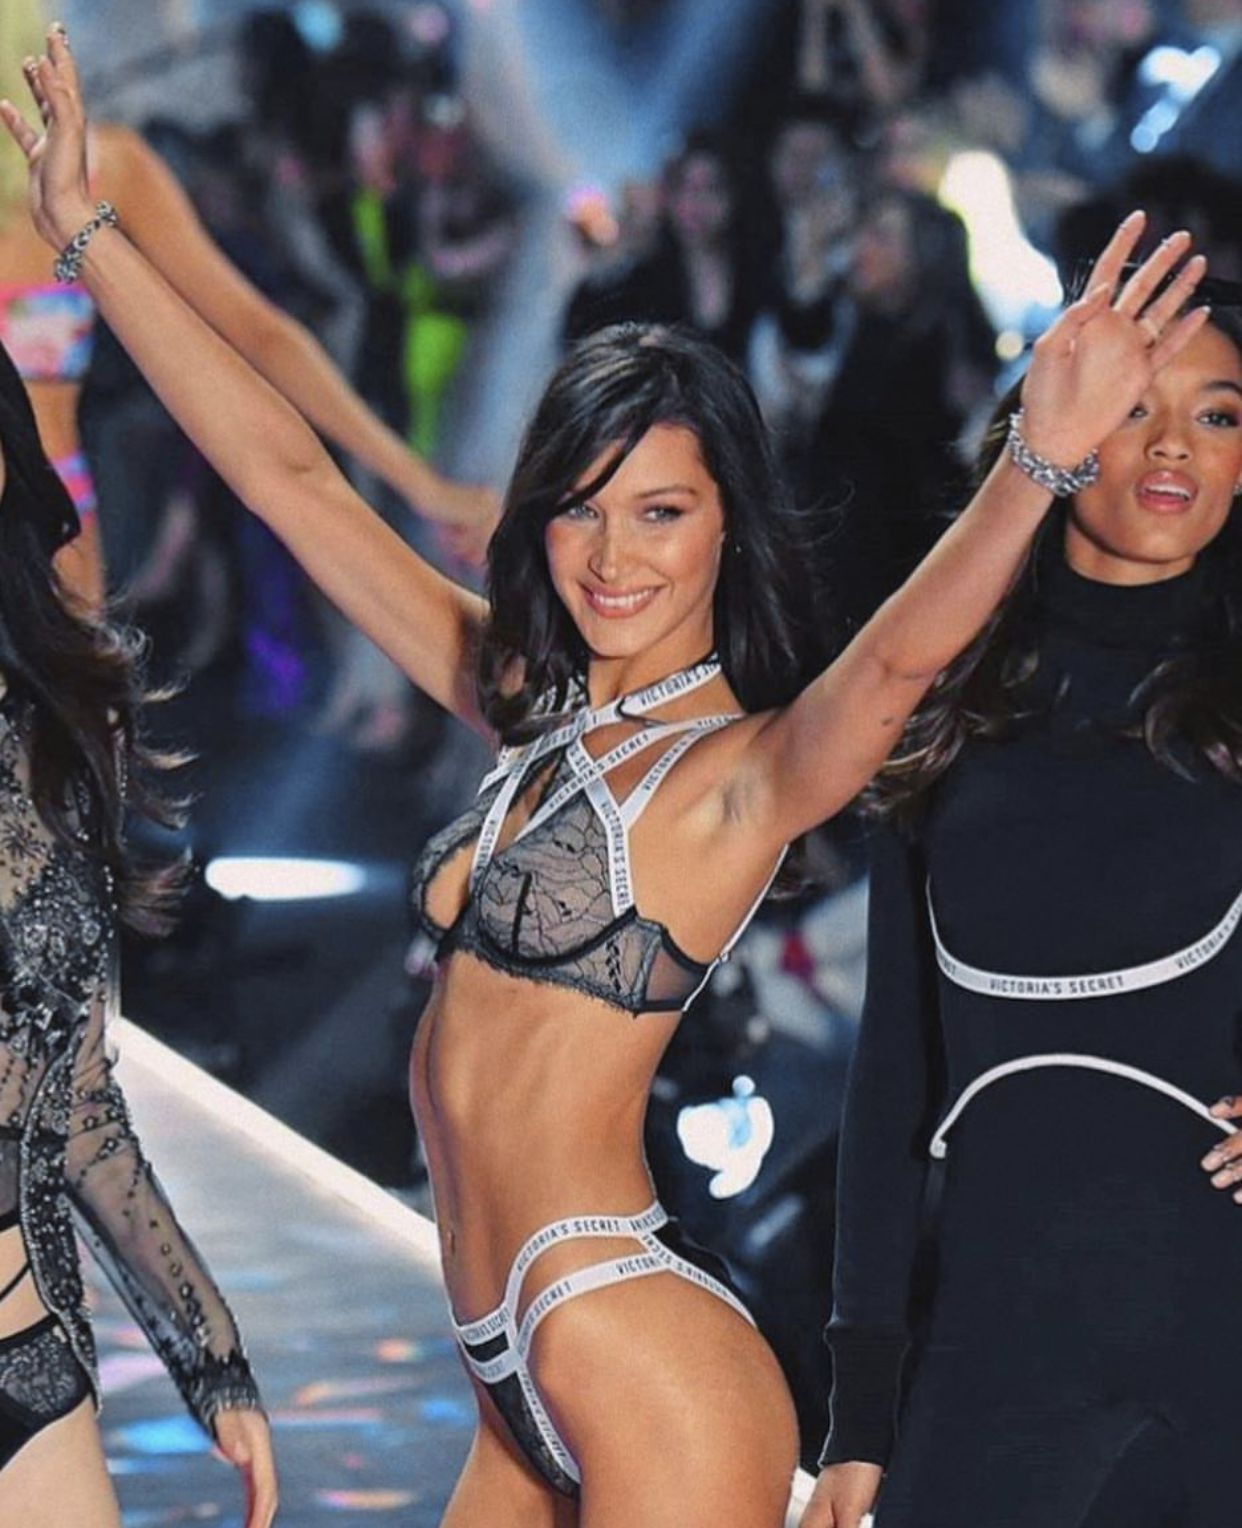 Forum on this topic: Roxanna dunlop naked, romee-strijd-and-taylor-hill-at-catch/